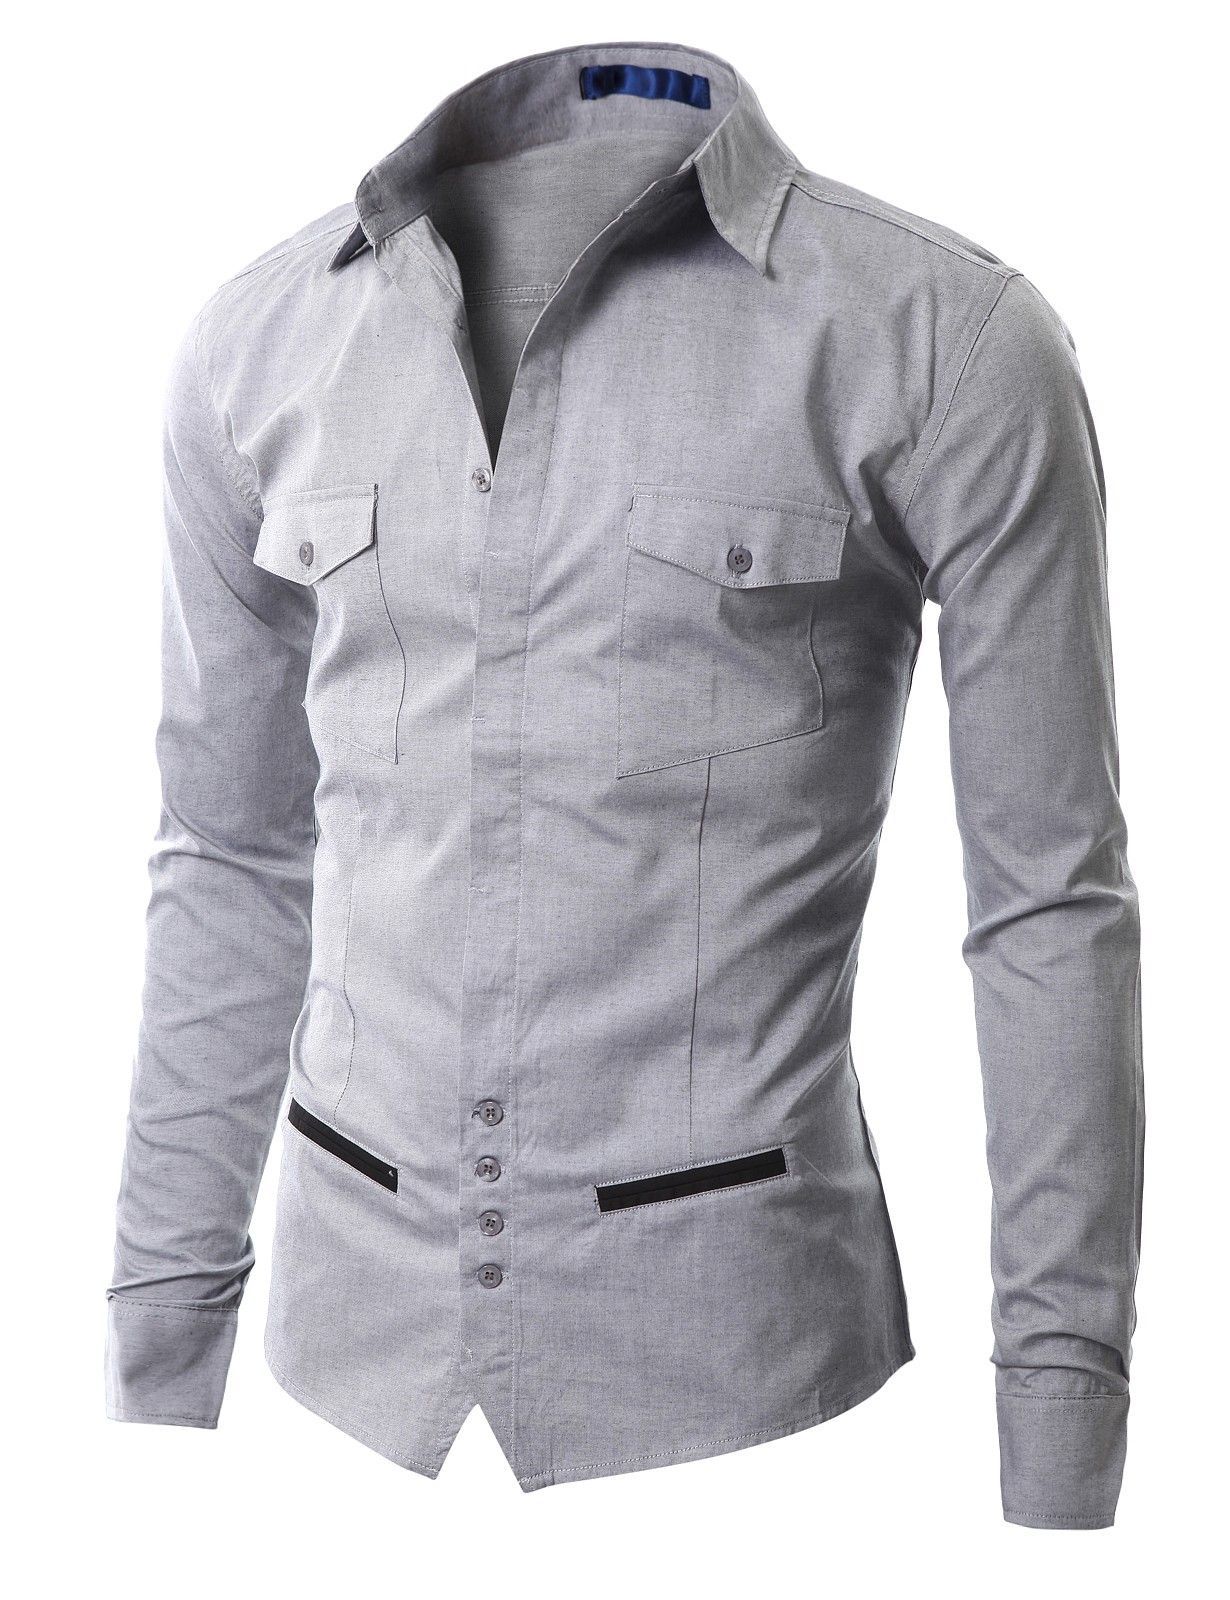 c0780bd8 Mens Casual Unique design Dress Shirts (AAK01) | T-Shirts | Shirts ...